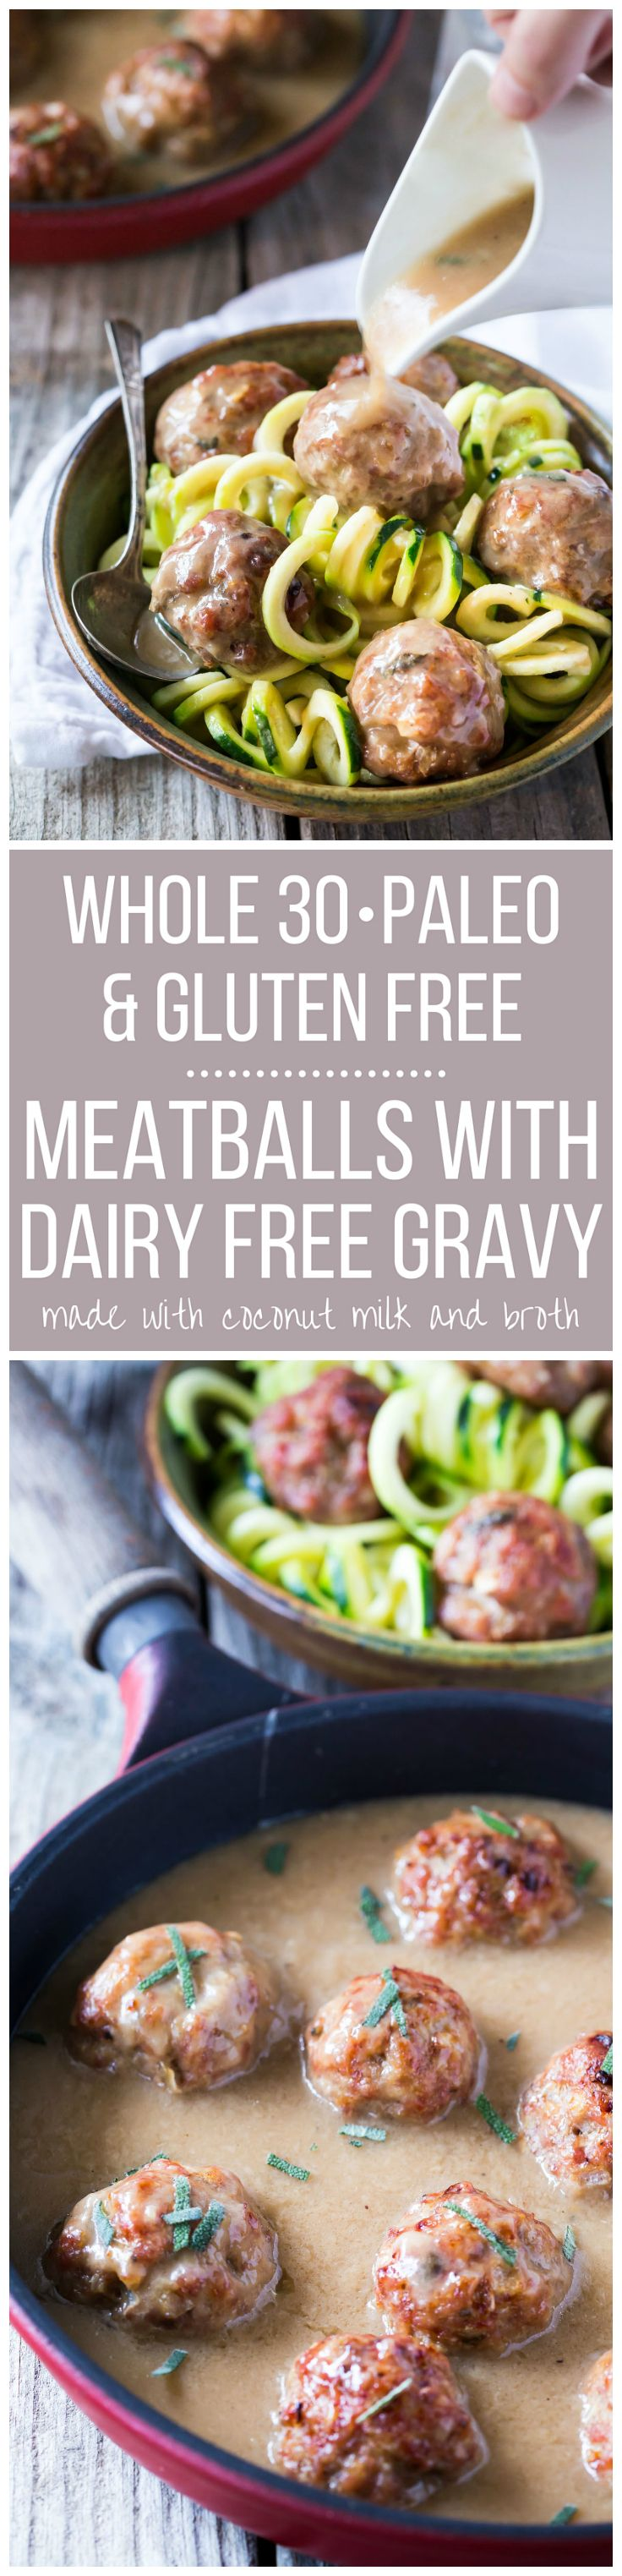 SEasy Whole 30 sage and Onion Paleo Meatballs with Creamy Dairy Free Gravy (made with coconut milk), by teaandbiscuits: Try them with zucchini noodles (zoodles). #Meatballs #Whole30 #Zoodles